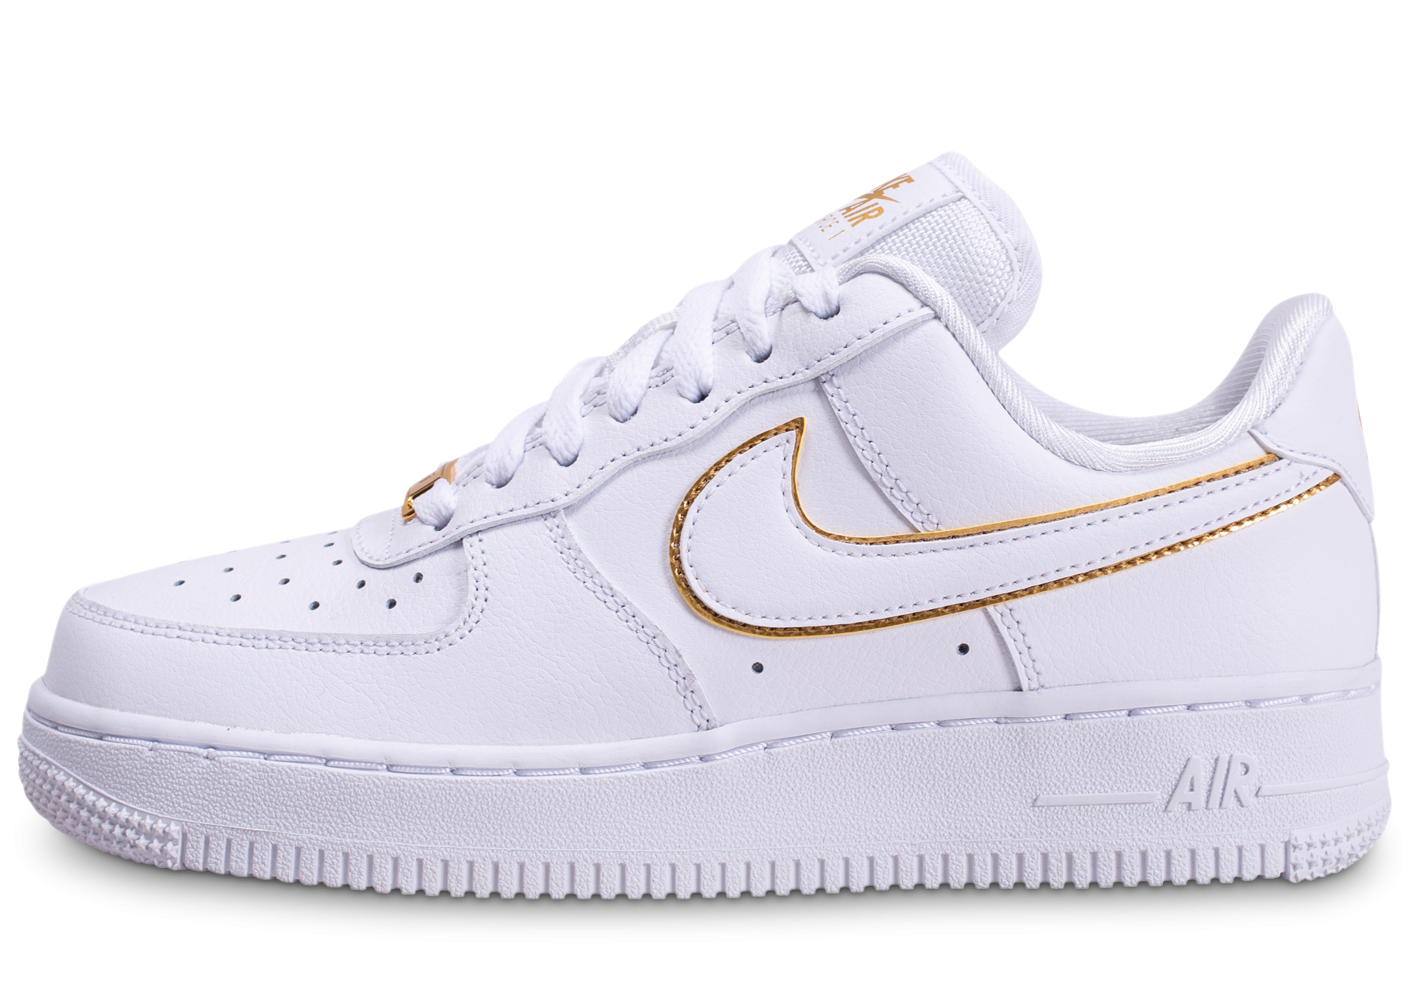 nike air force 1 femme blanc or